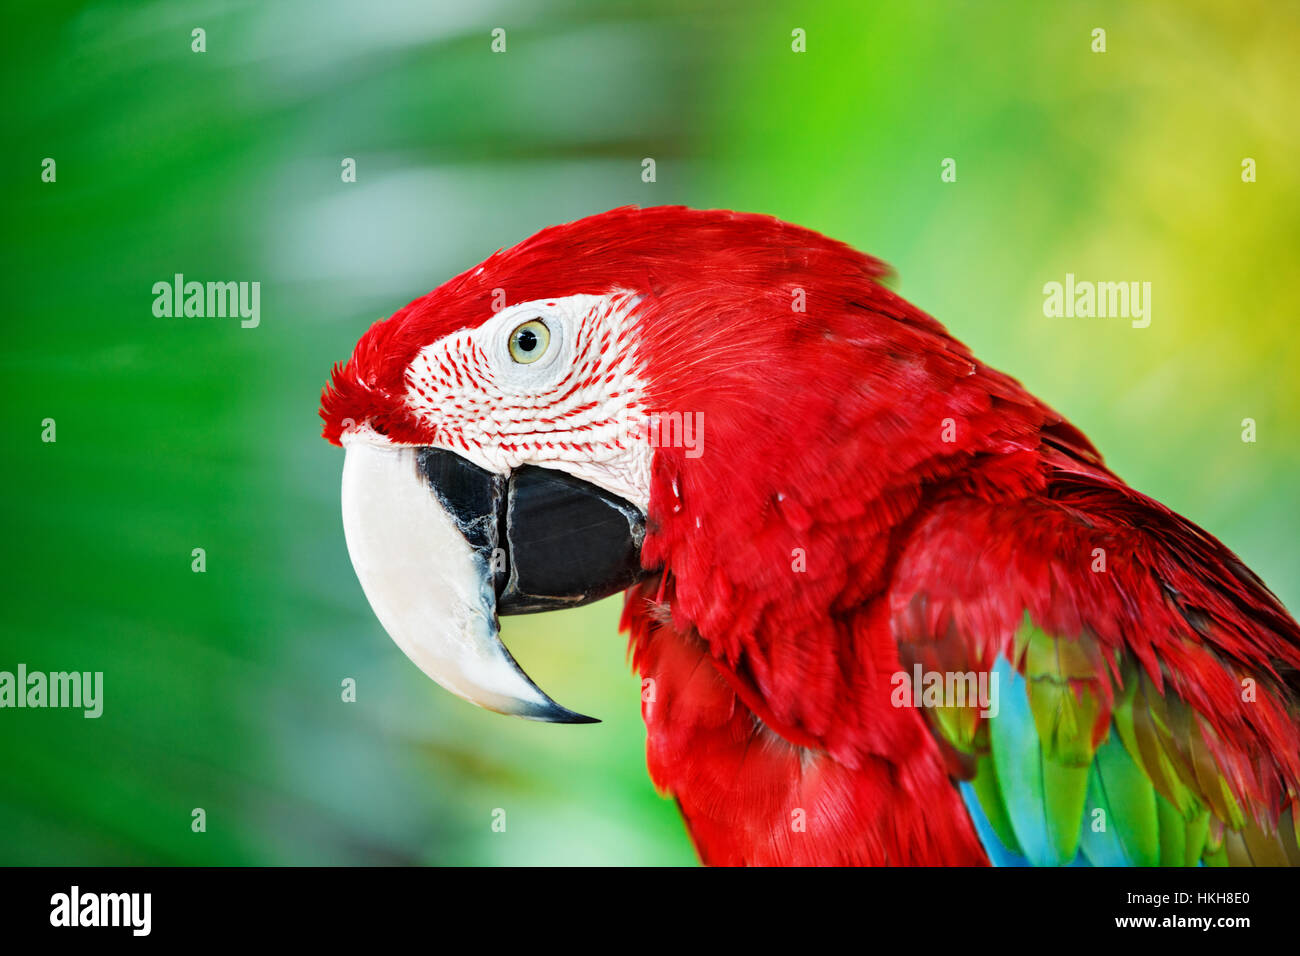 Portrait of red macaw parrot against jungle. Parrot head on green background. Nature, wildlife and tropical rainforest - Stock Image